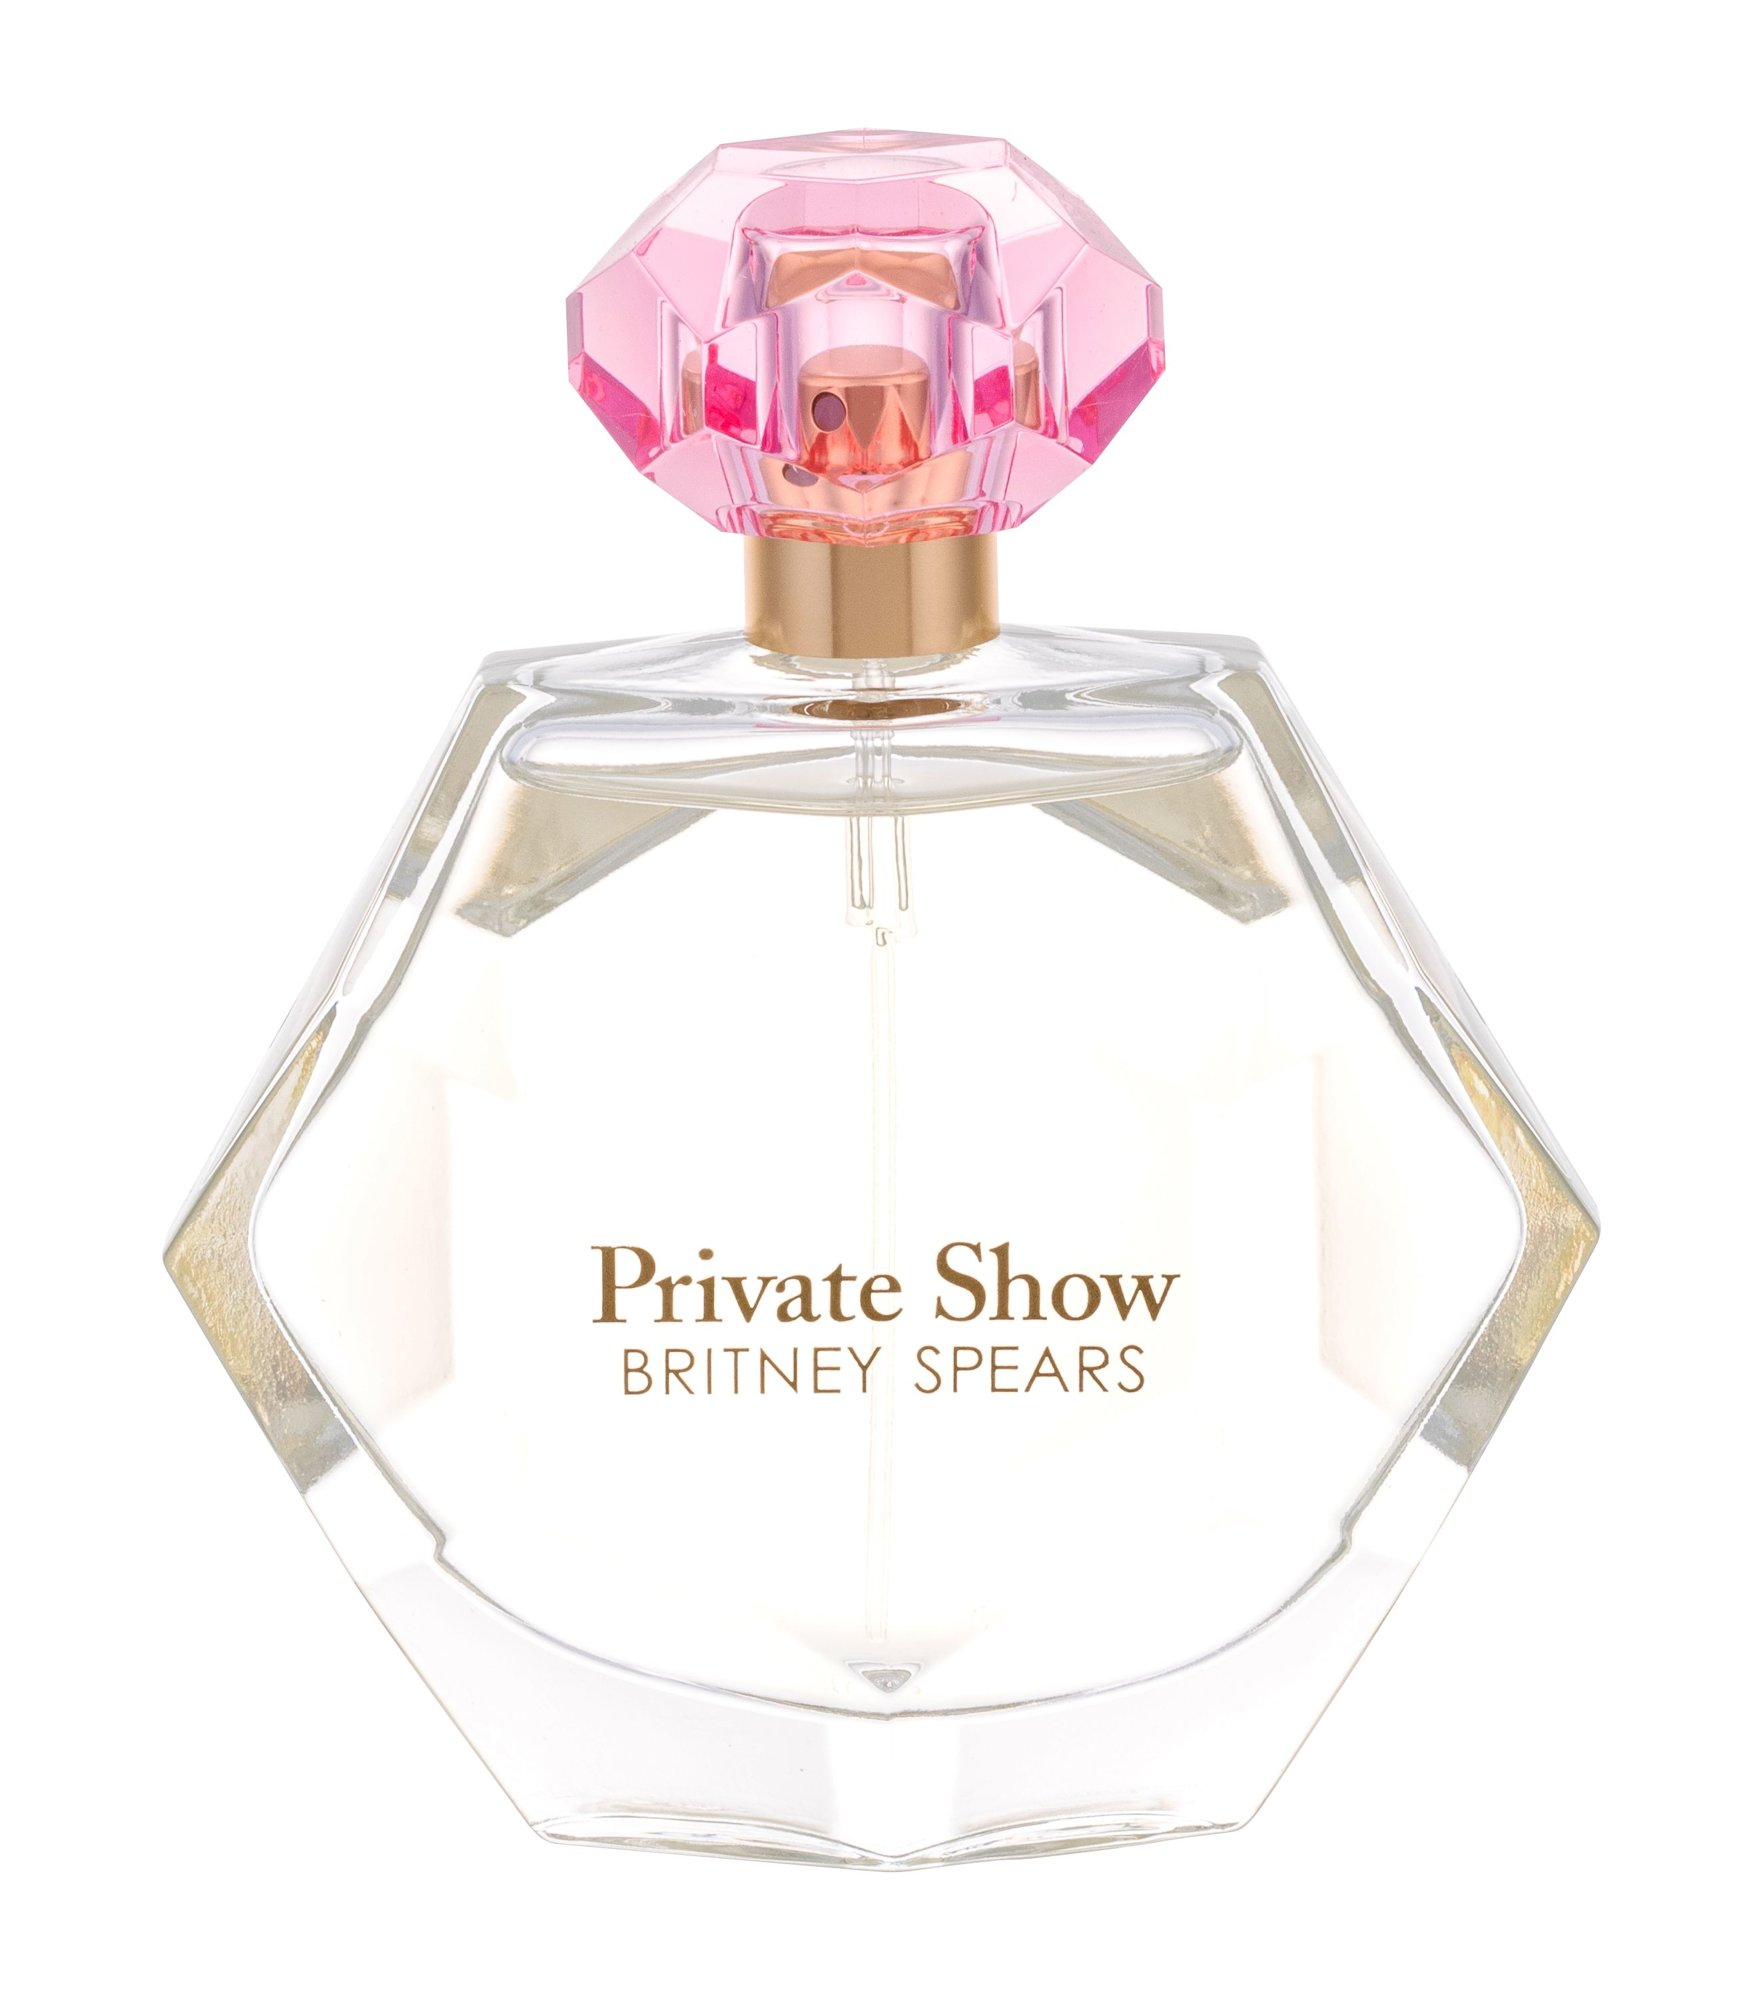 Britney Spears Private Show, edp 90ml - Teszter